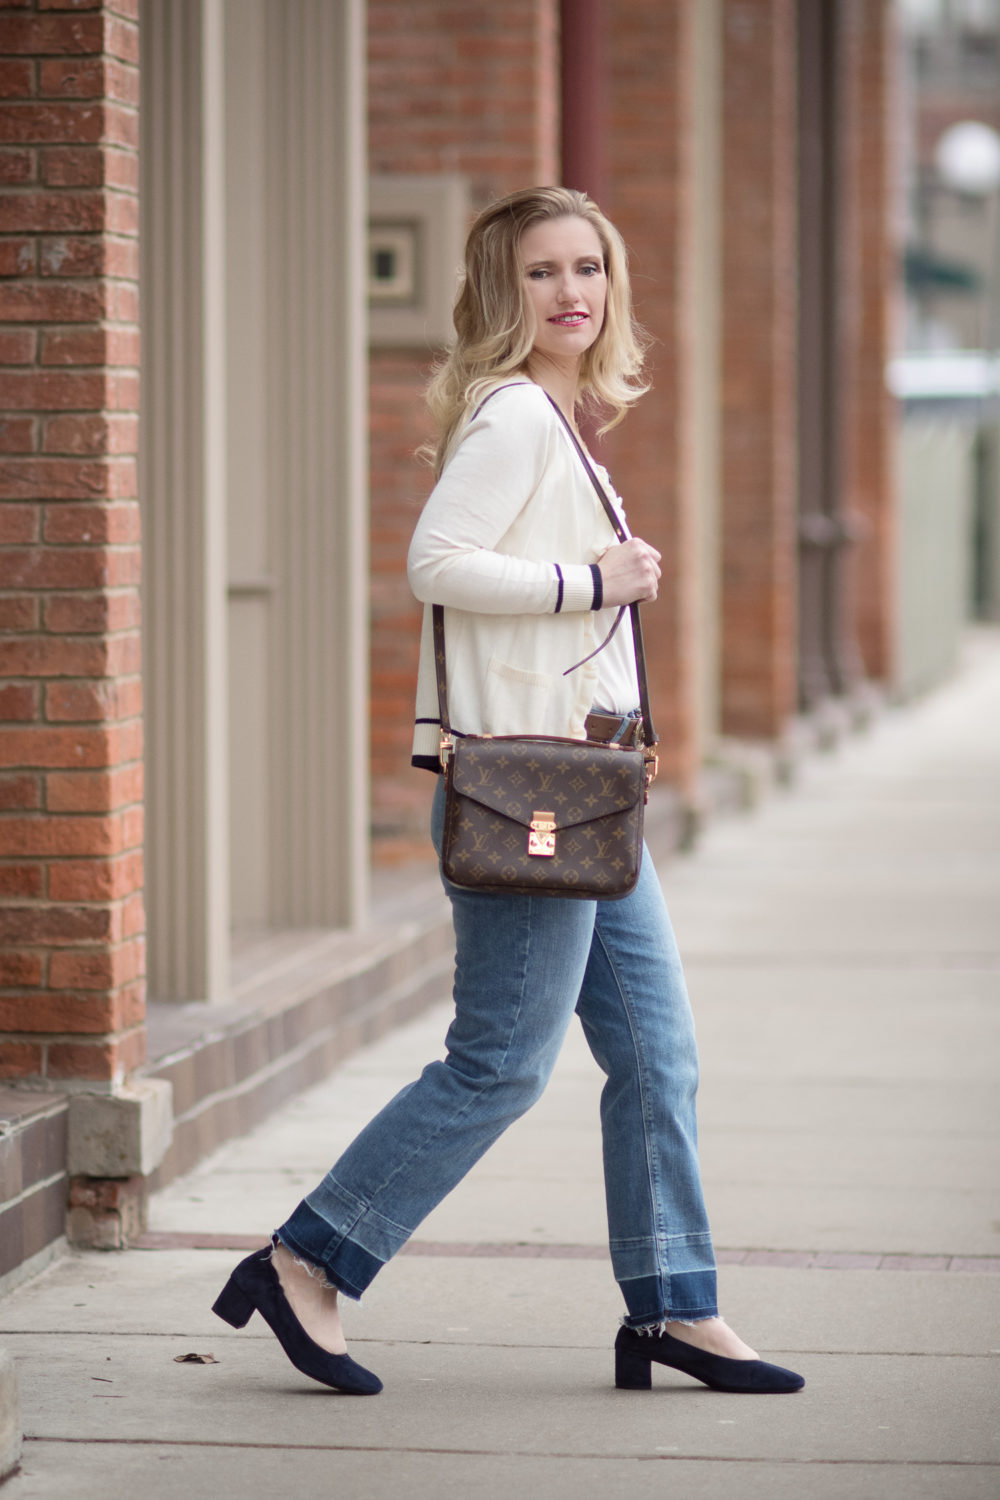 Petite Fashion and Style Blog | Fashion for Petite Women | Talbots Ruffle Front Cardigan Sweater | Gucci Double G Belt | Everlane The Day Heel | Click to Read More... - Talbots New Arrivals styled by popular Michigan petite fashion blogger The Blue Hydrangeas